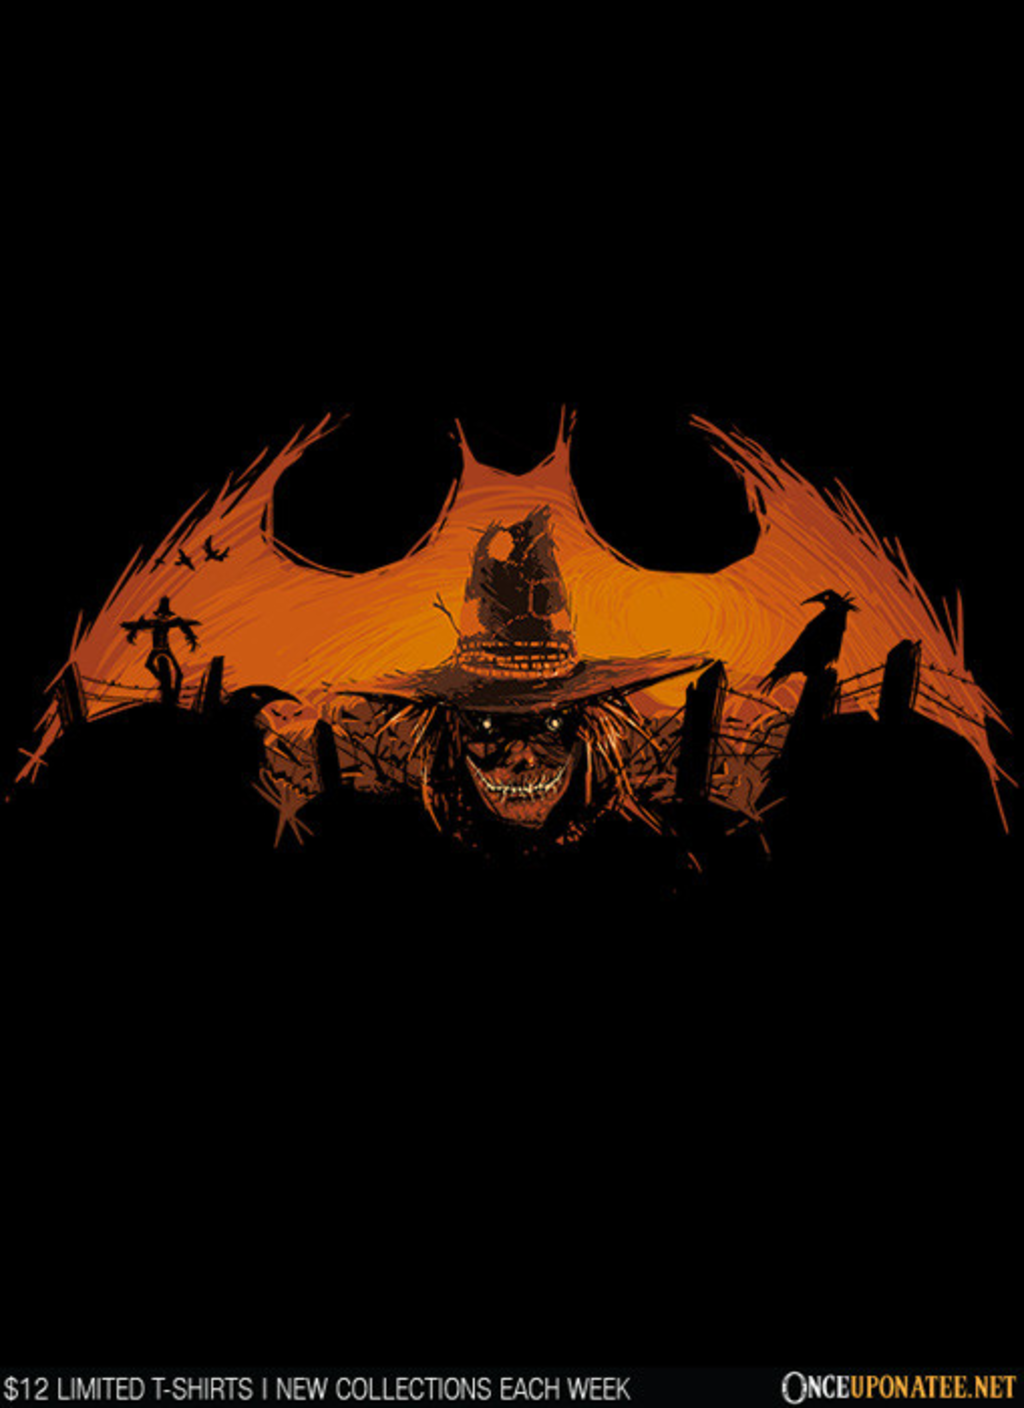 Once Upon a Tee: Scarecrow Nightmare